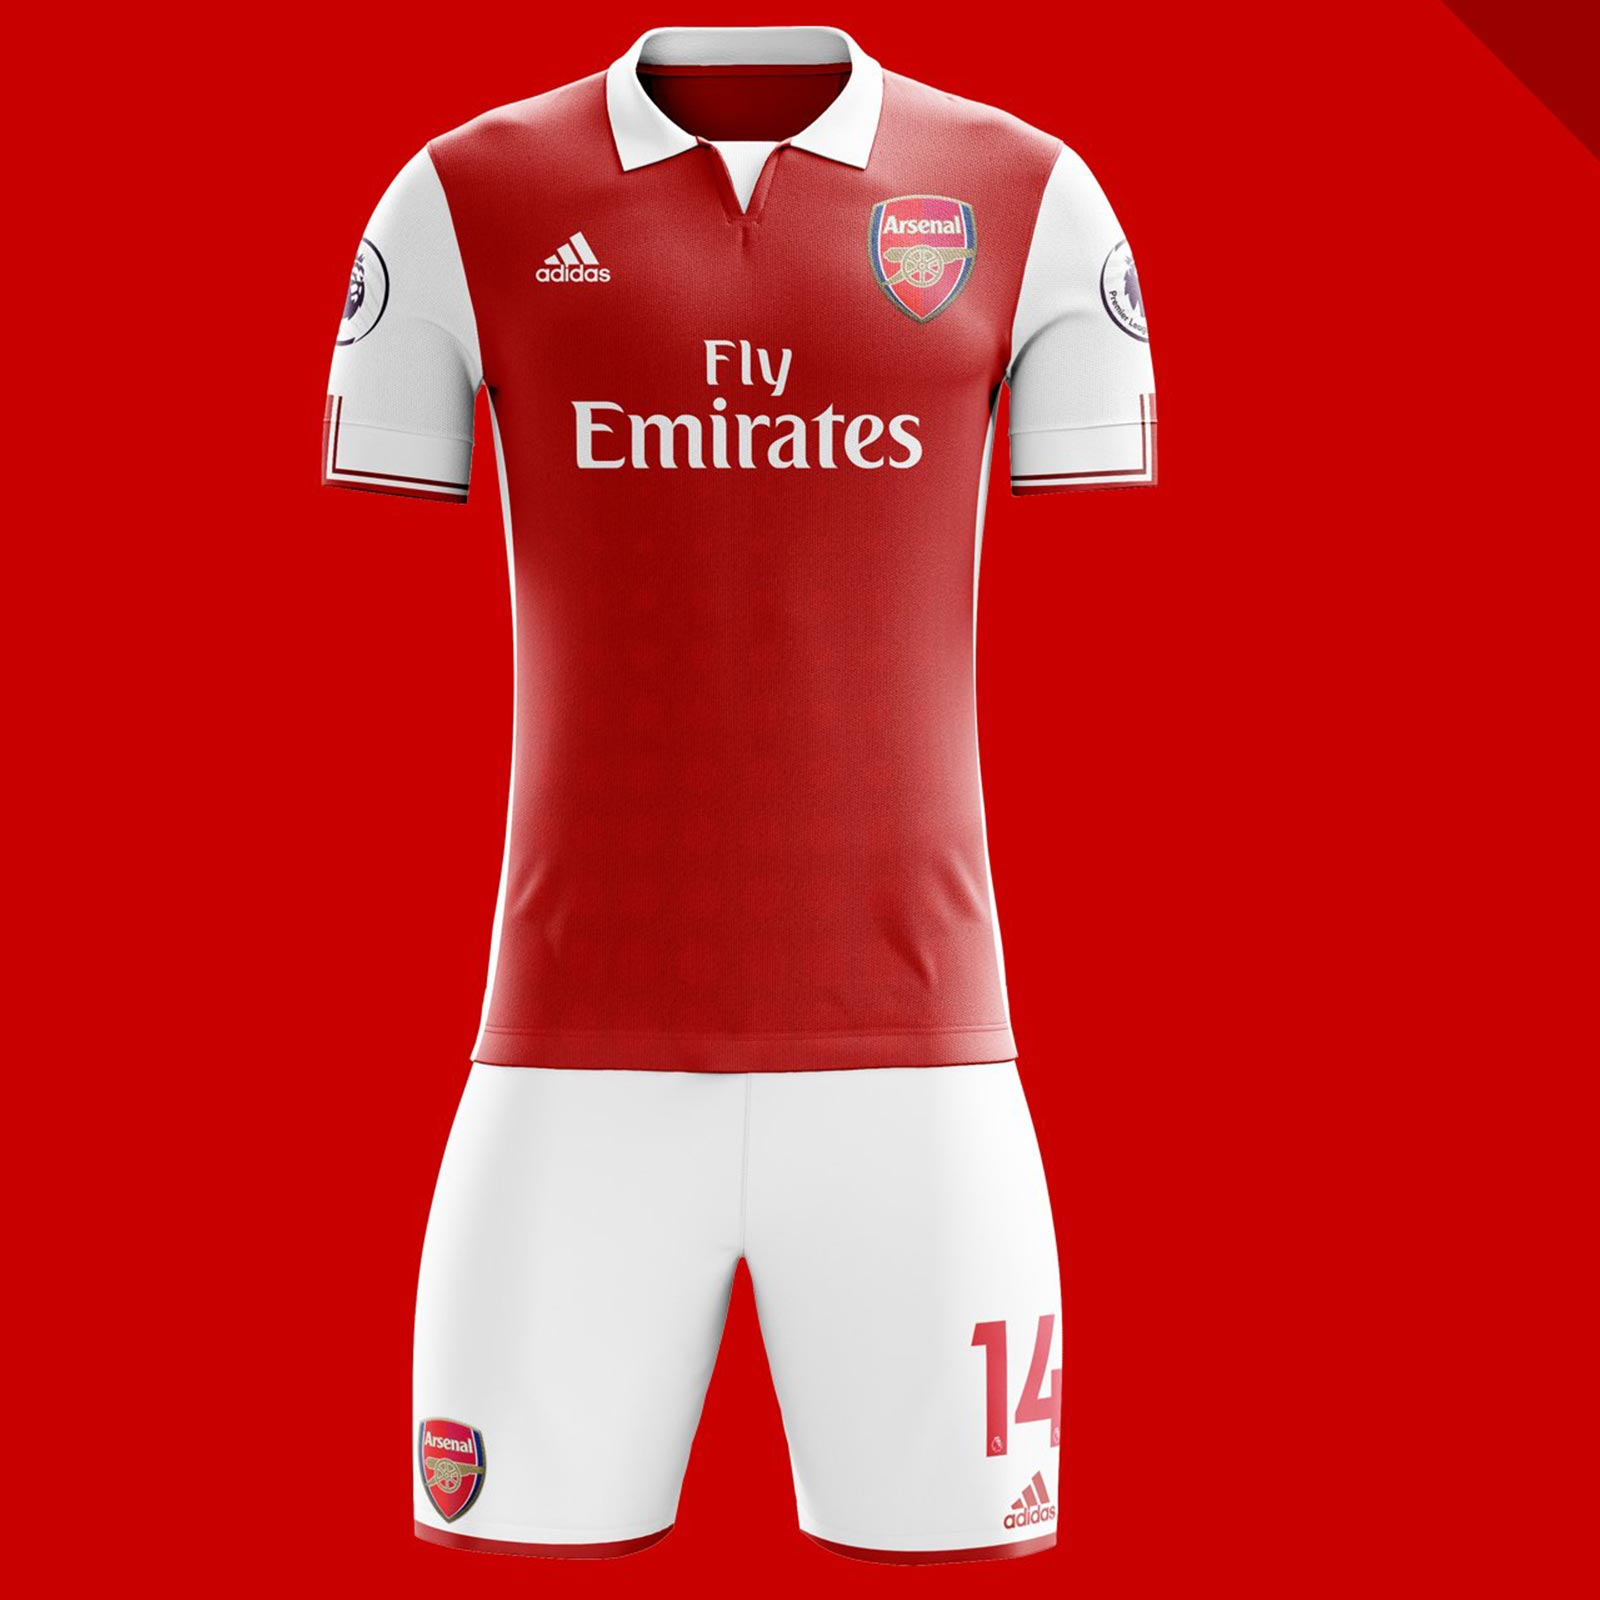 We Think You Should See Arsenal s Concept Kits for 2019 20 05d1f18aaf376